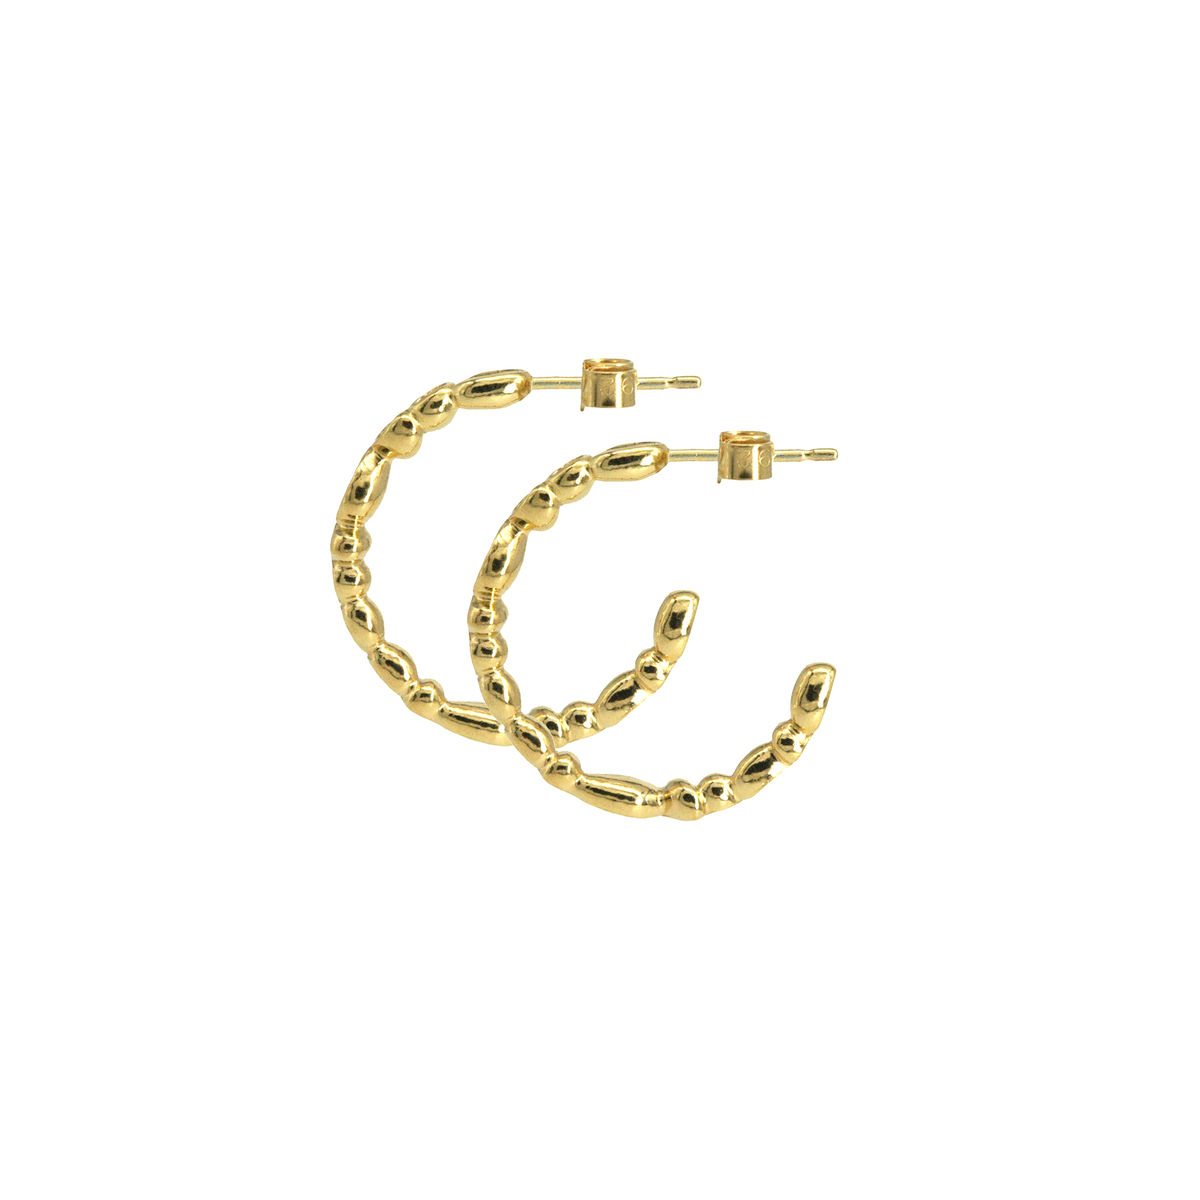 SHIMMER small hoop earrings - gold plated sterling silver - product images  of